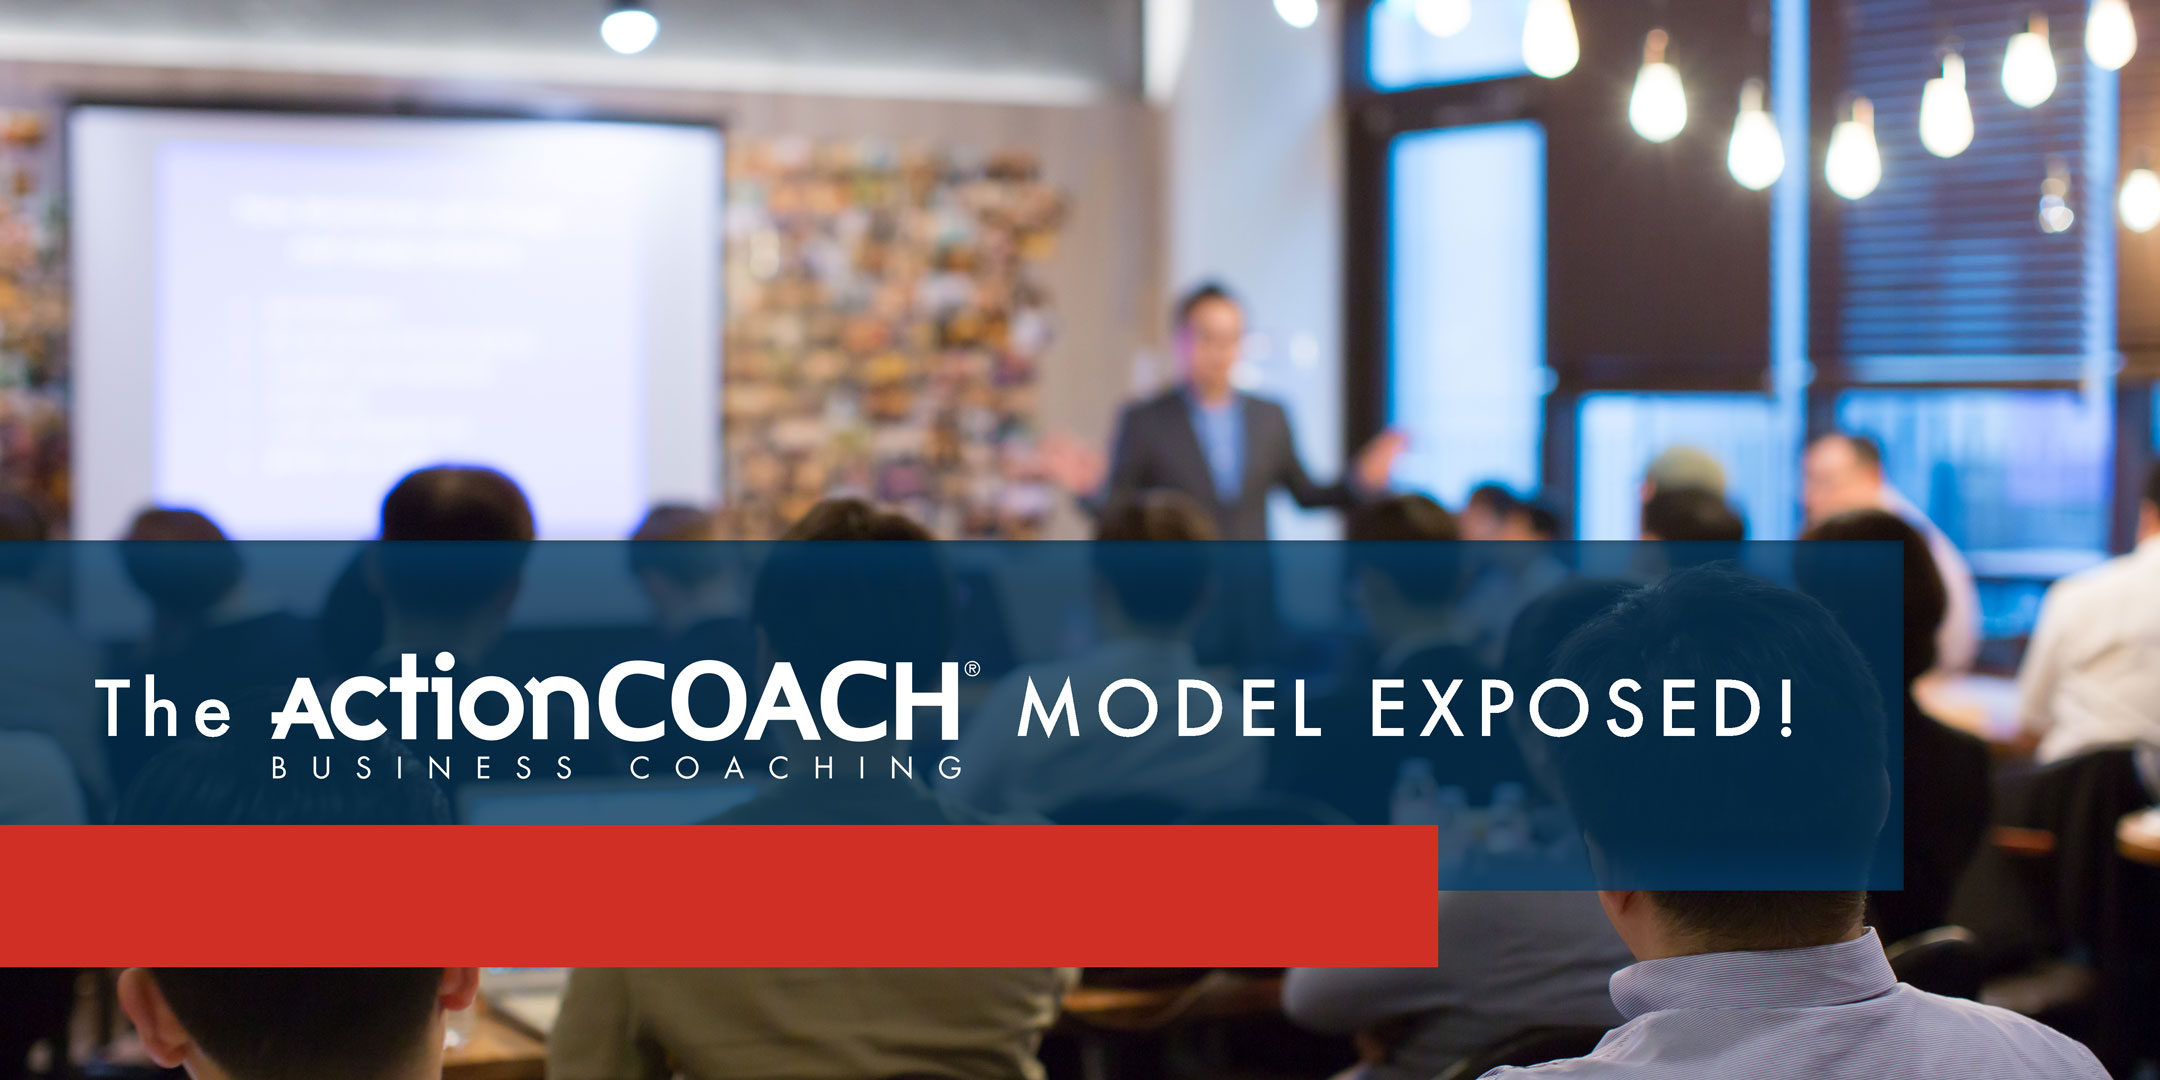 ActionCOACH-model-Exposed---Blank